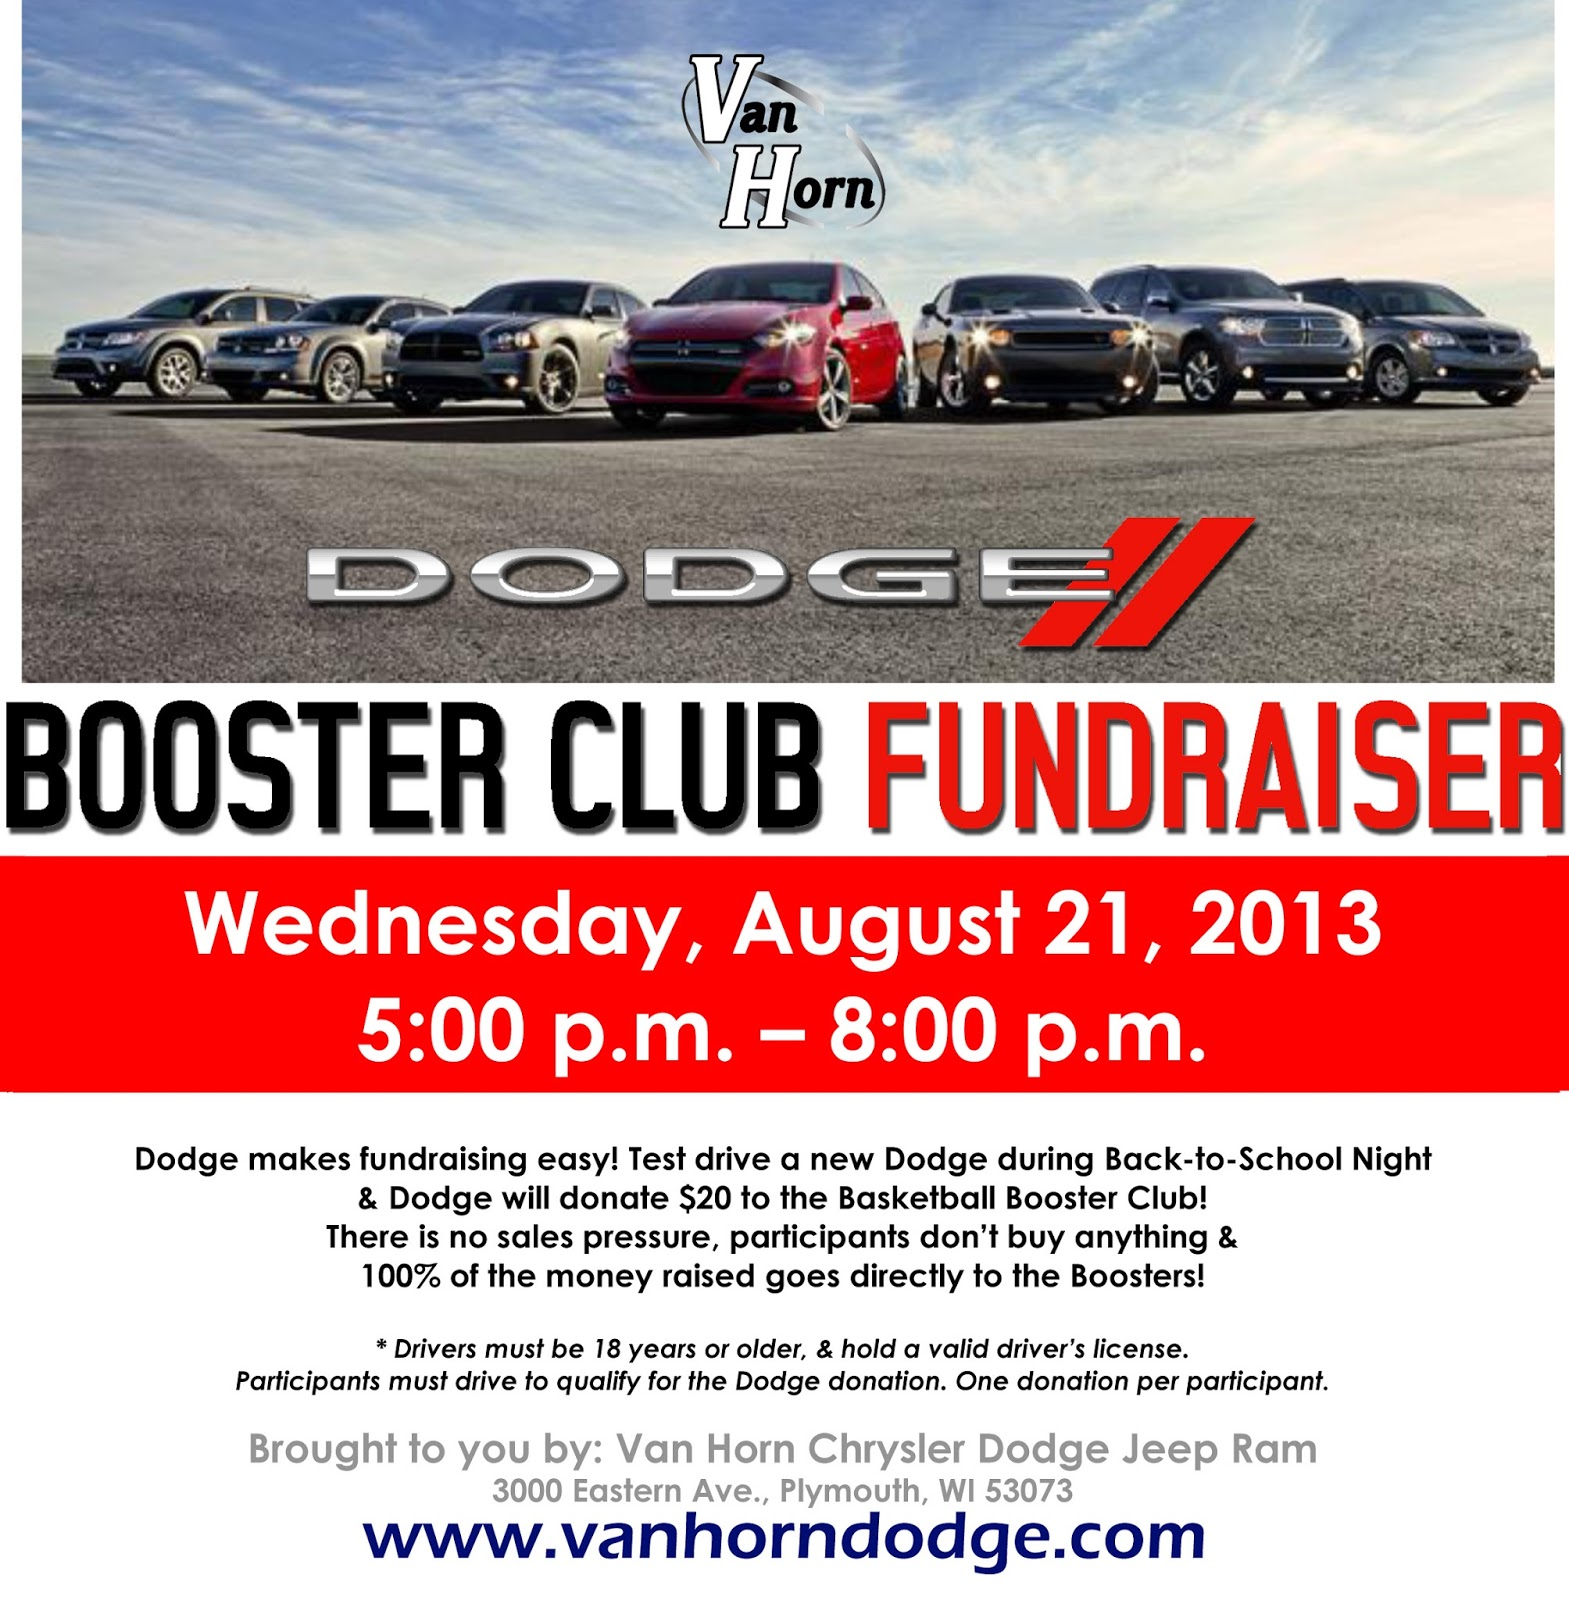 Everyone in the community is invited to come out to test drive the 2013 dodge dart durango journey and grand caravan for each brief test drive taken